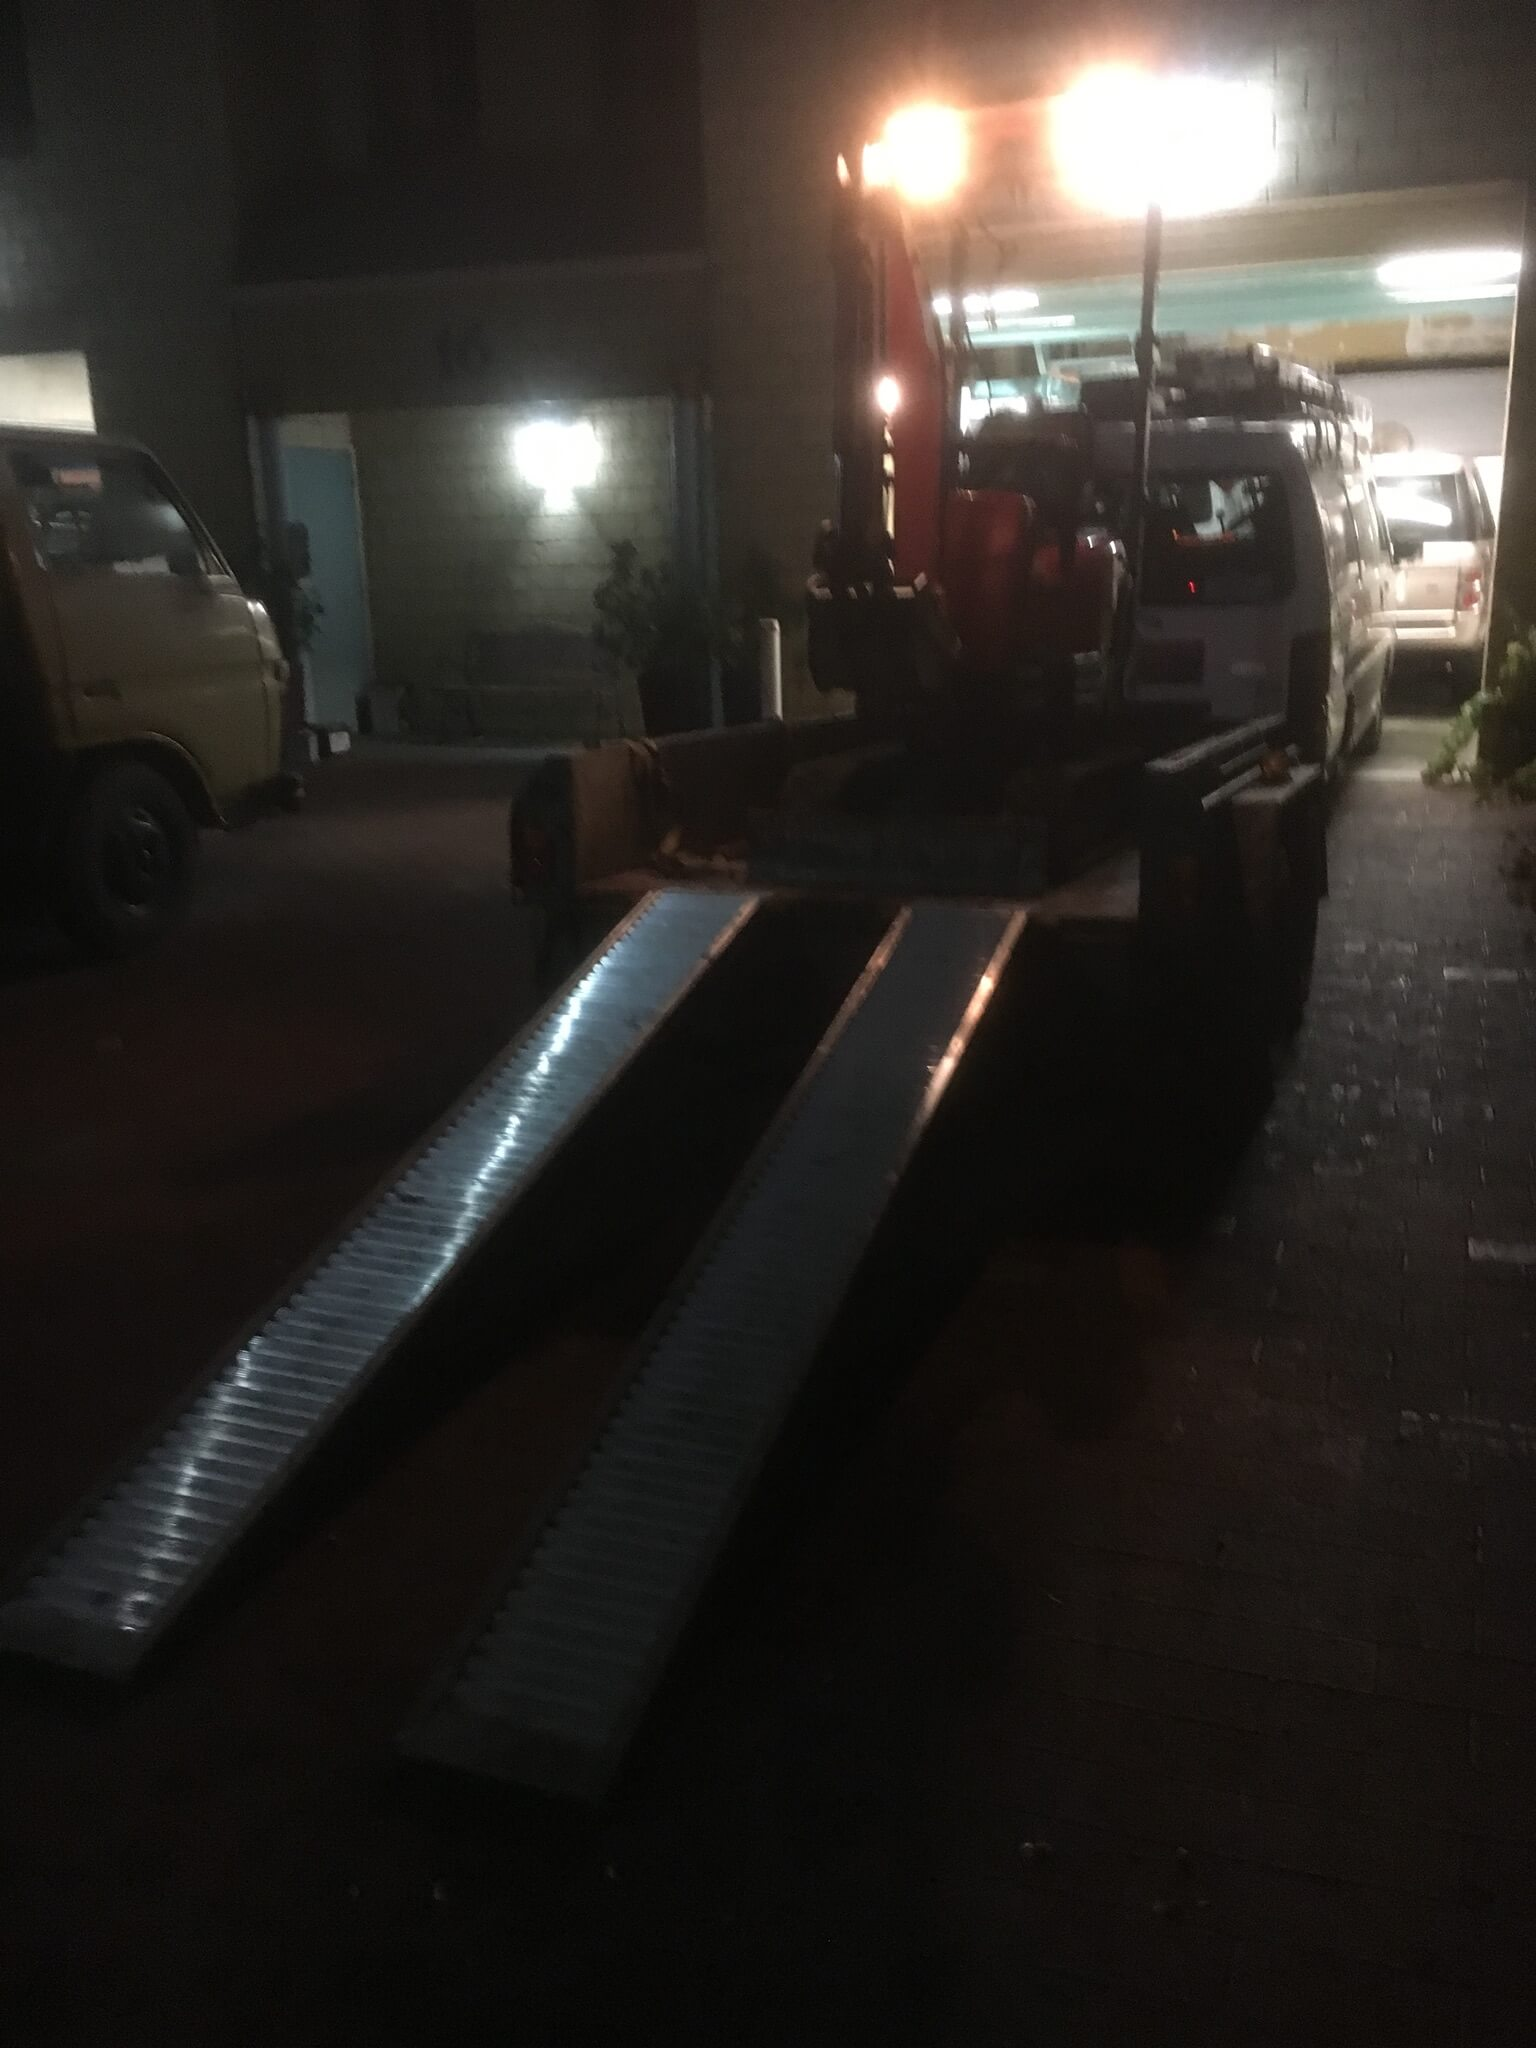 Everyday Plumbers Residential and Commercial Night Works - Onsite Works at Night 2041